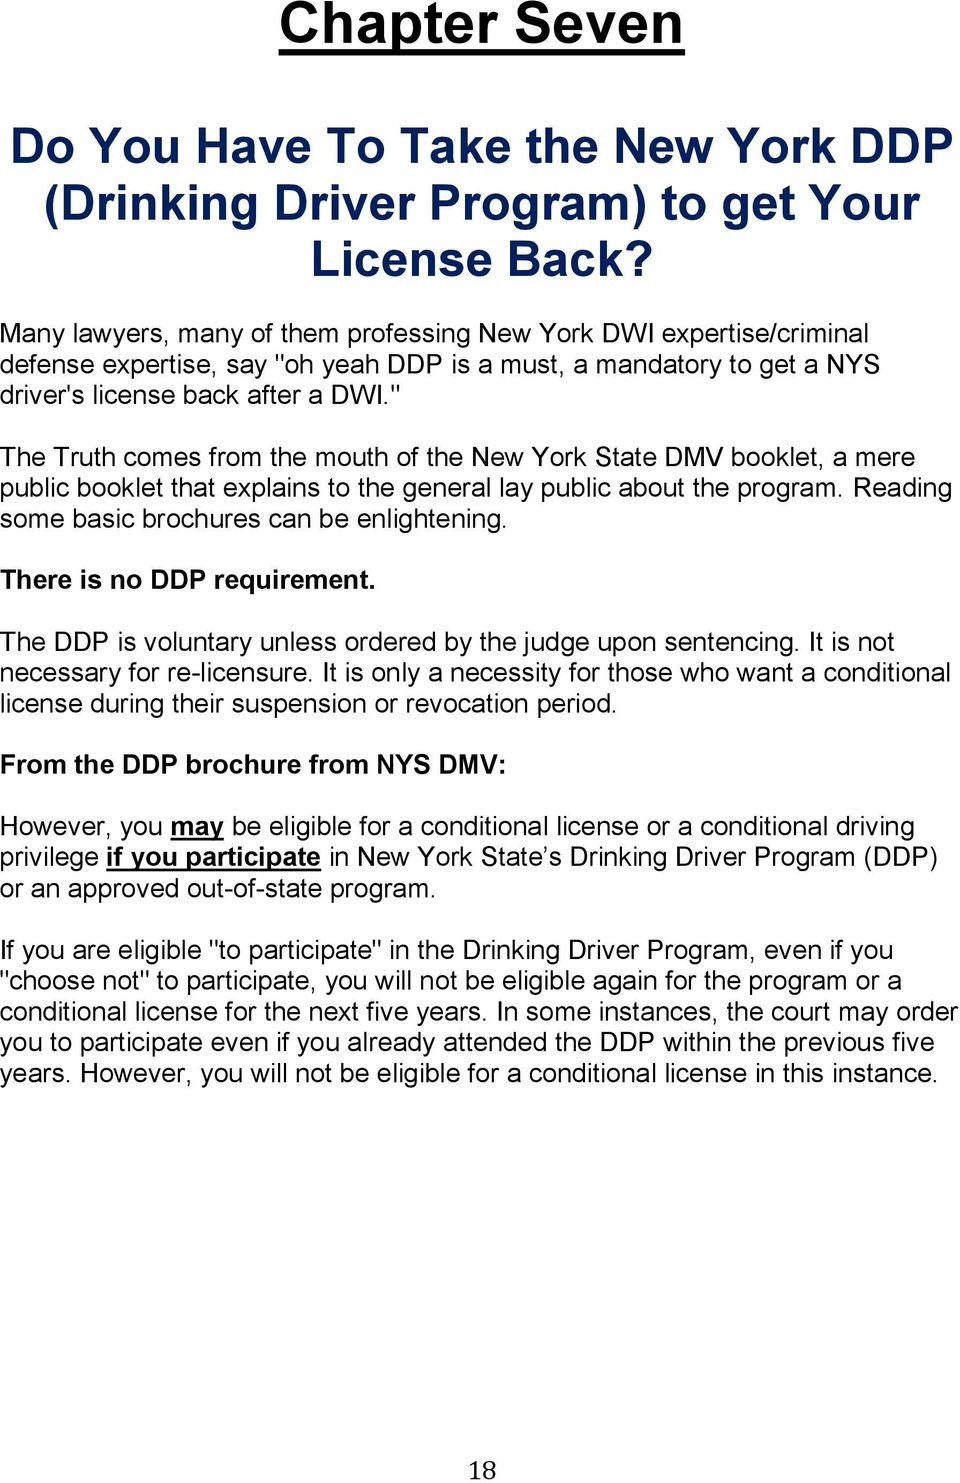 """ The Truth comes from the mouth of the New York State DMV booklet, a mere public booklet that explains to the general lay public about the program. Reading some basic brochures can be enlightening."